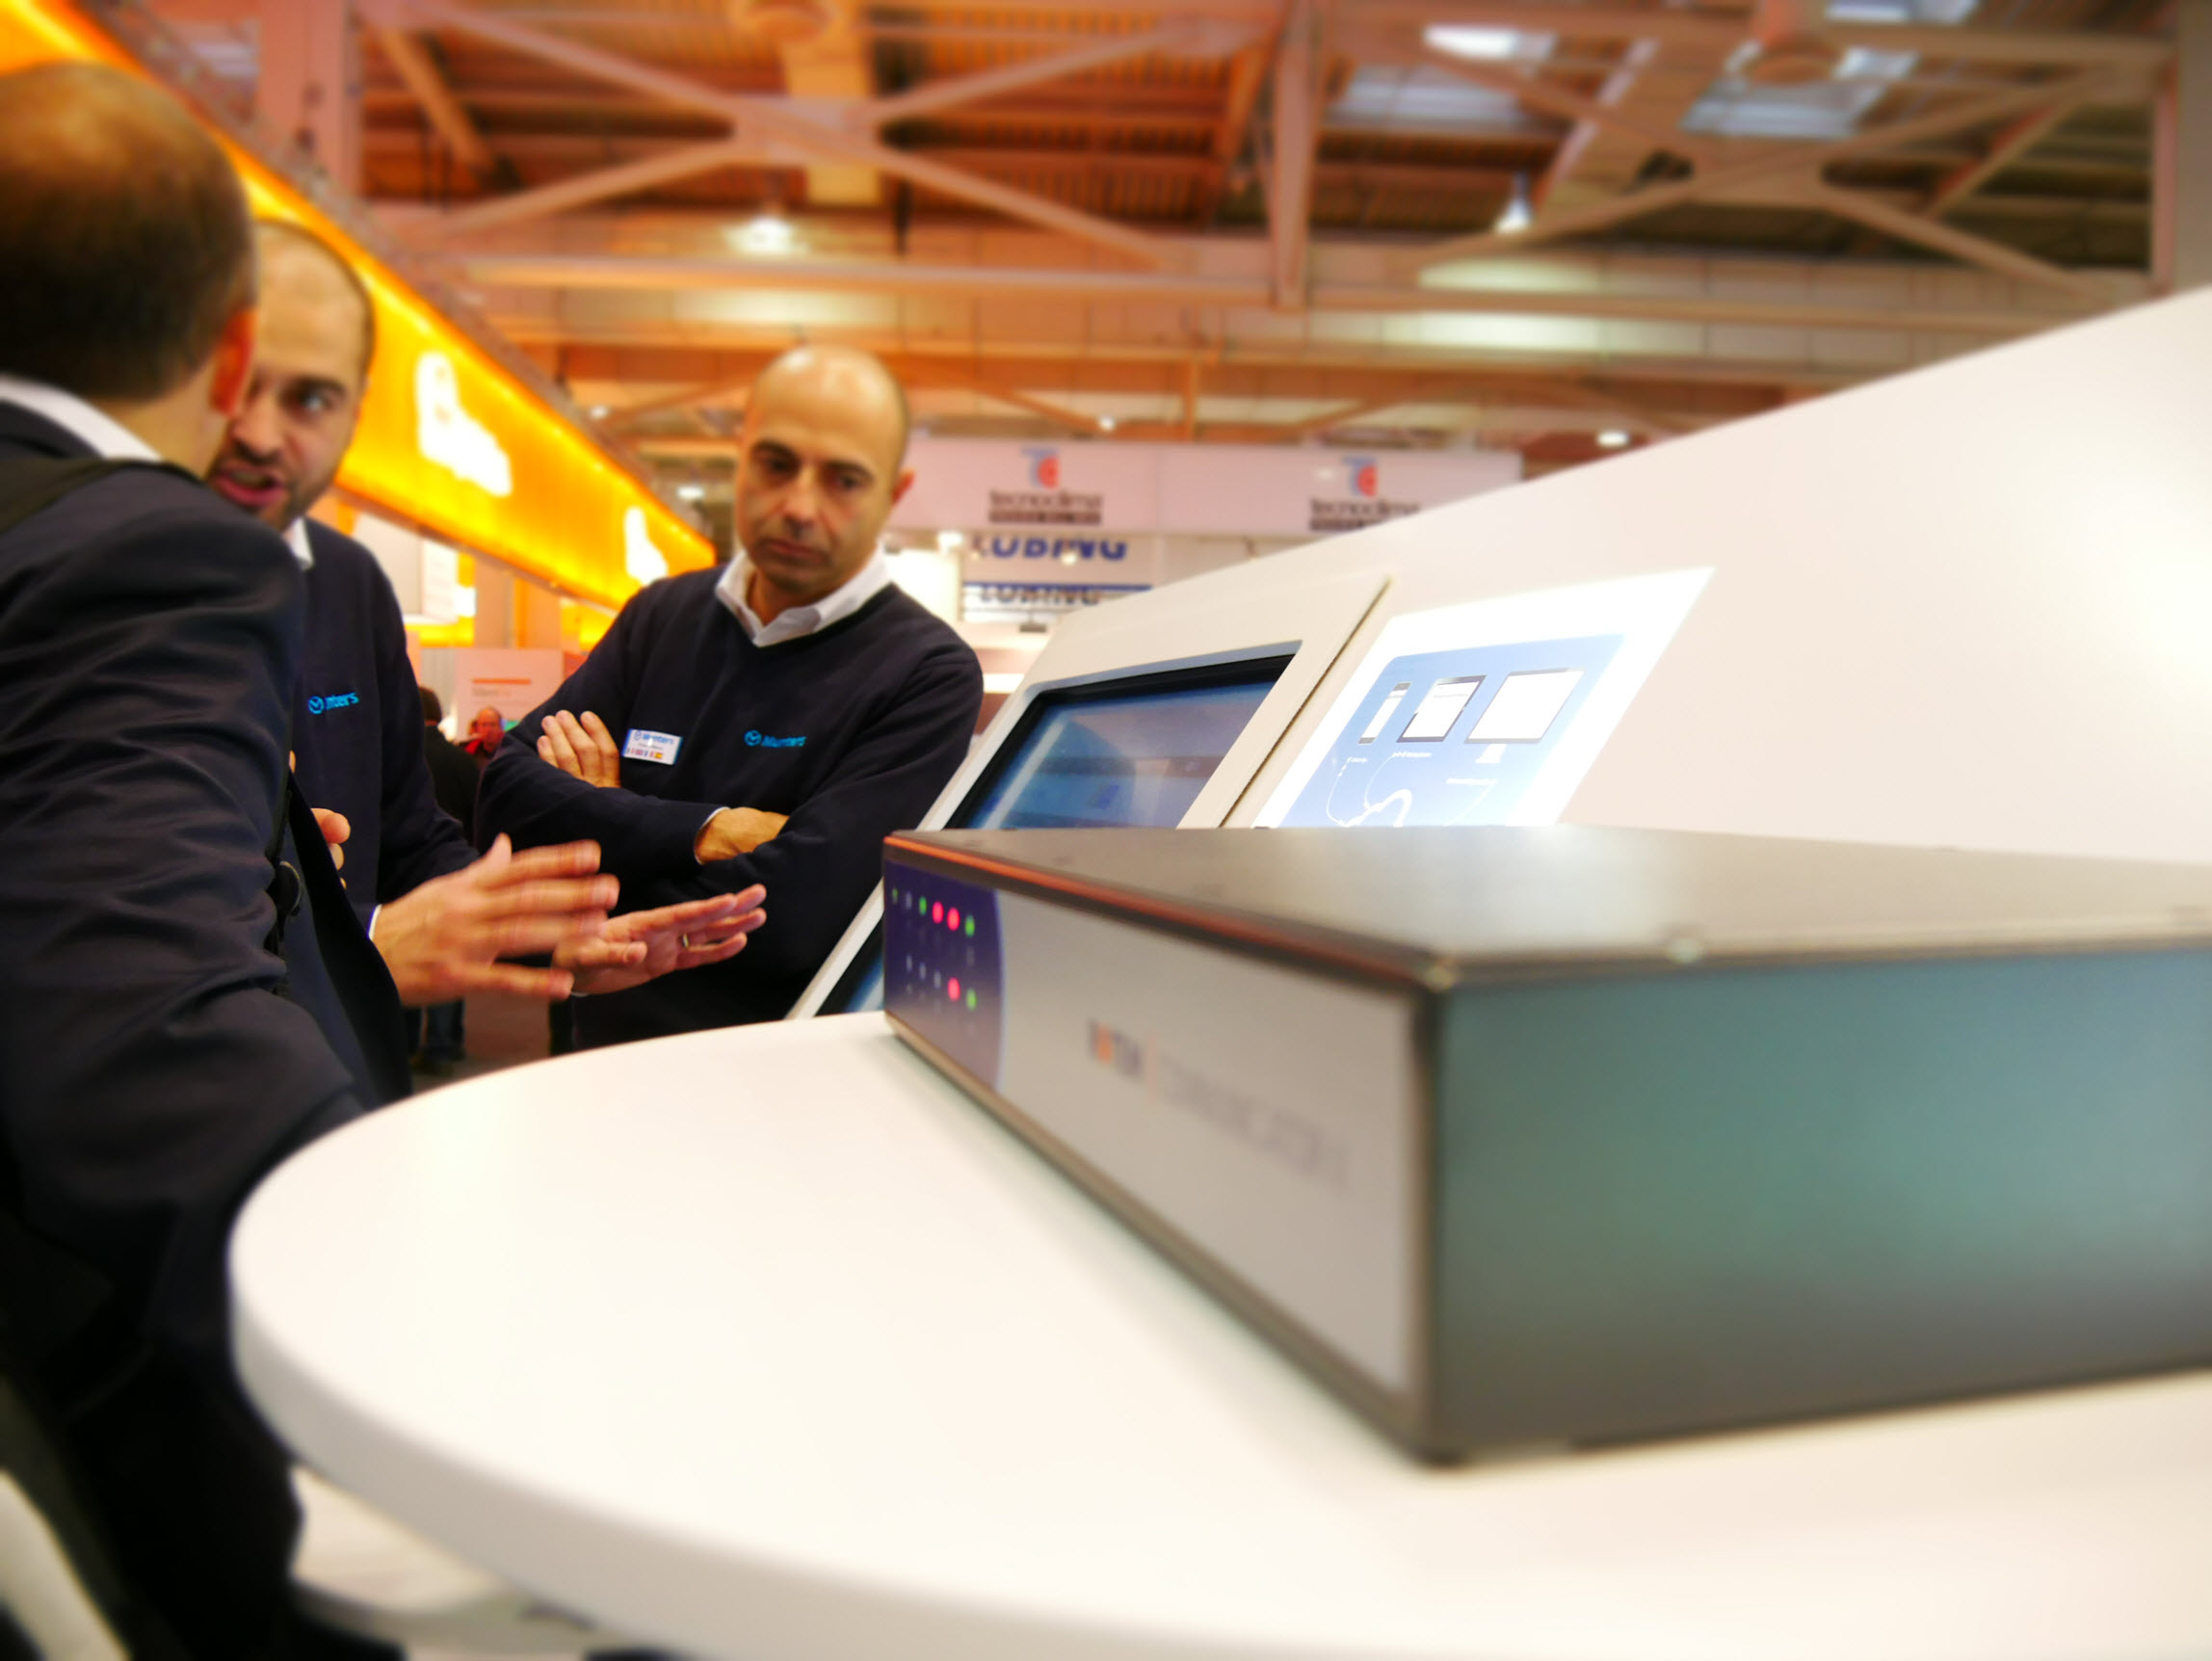 Munters Communicator box at EuroTier 2016